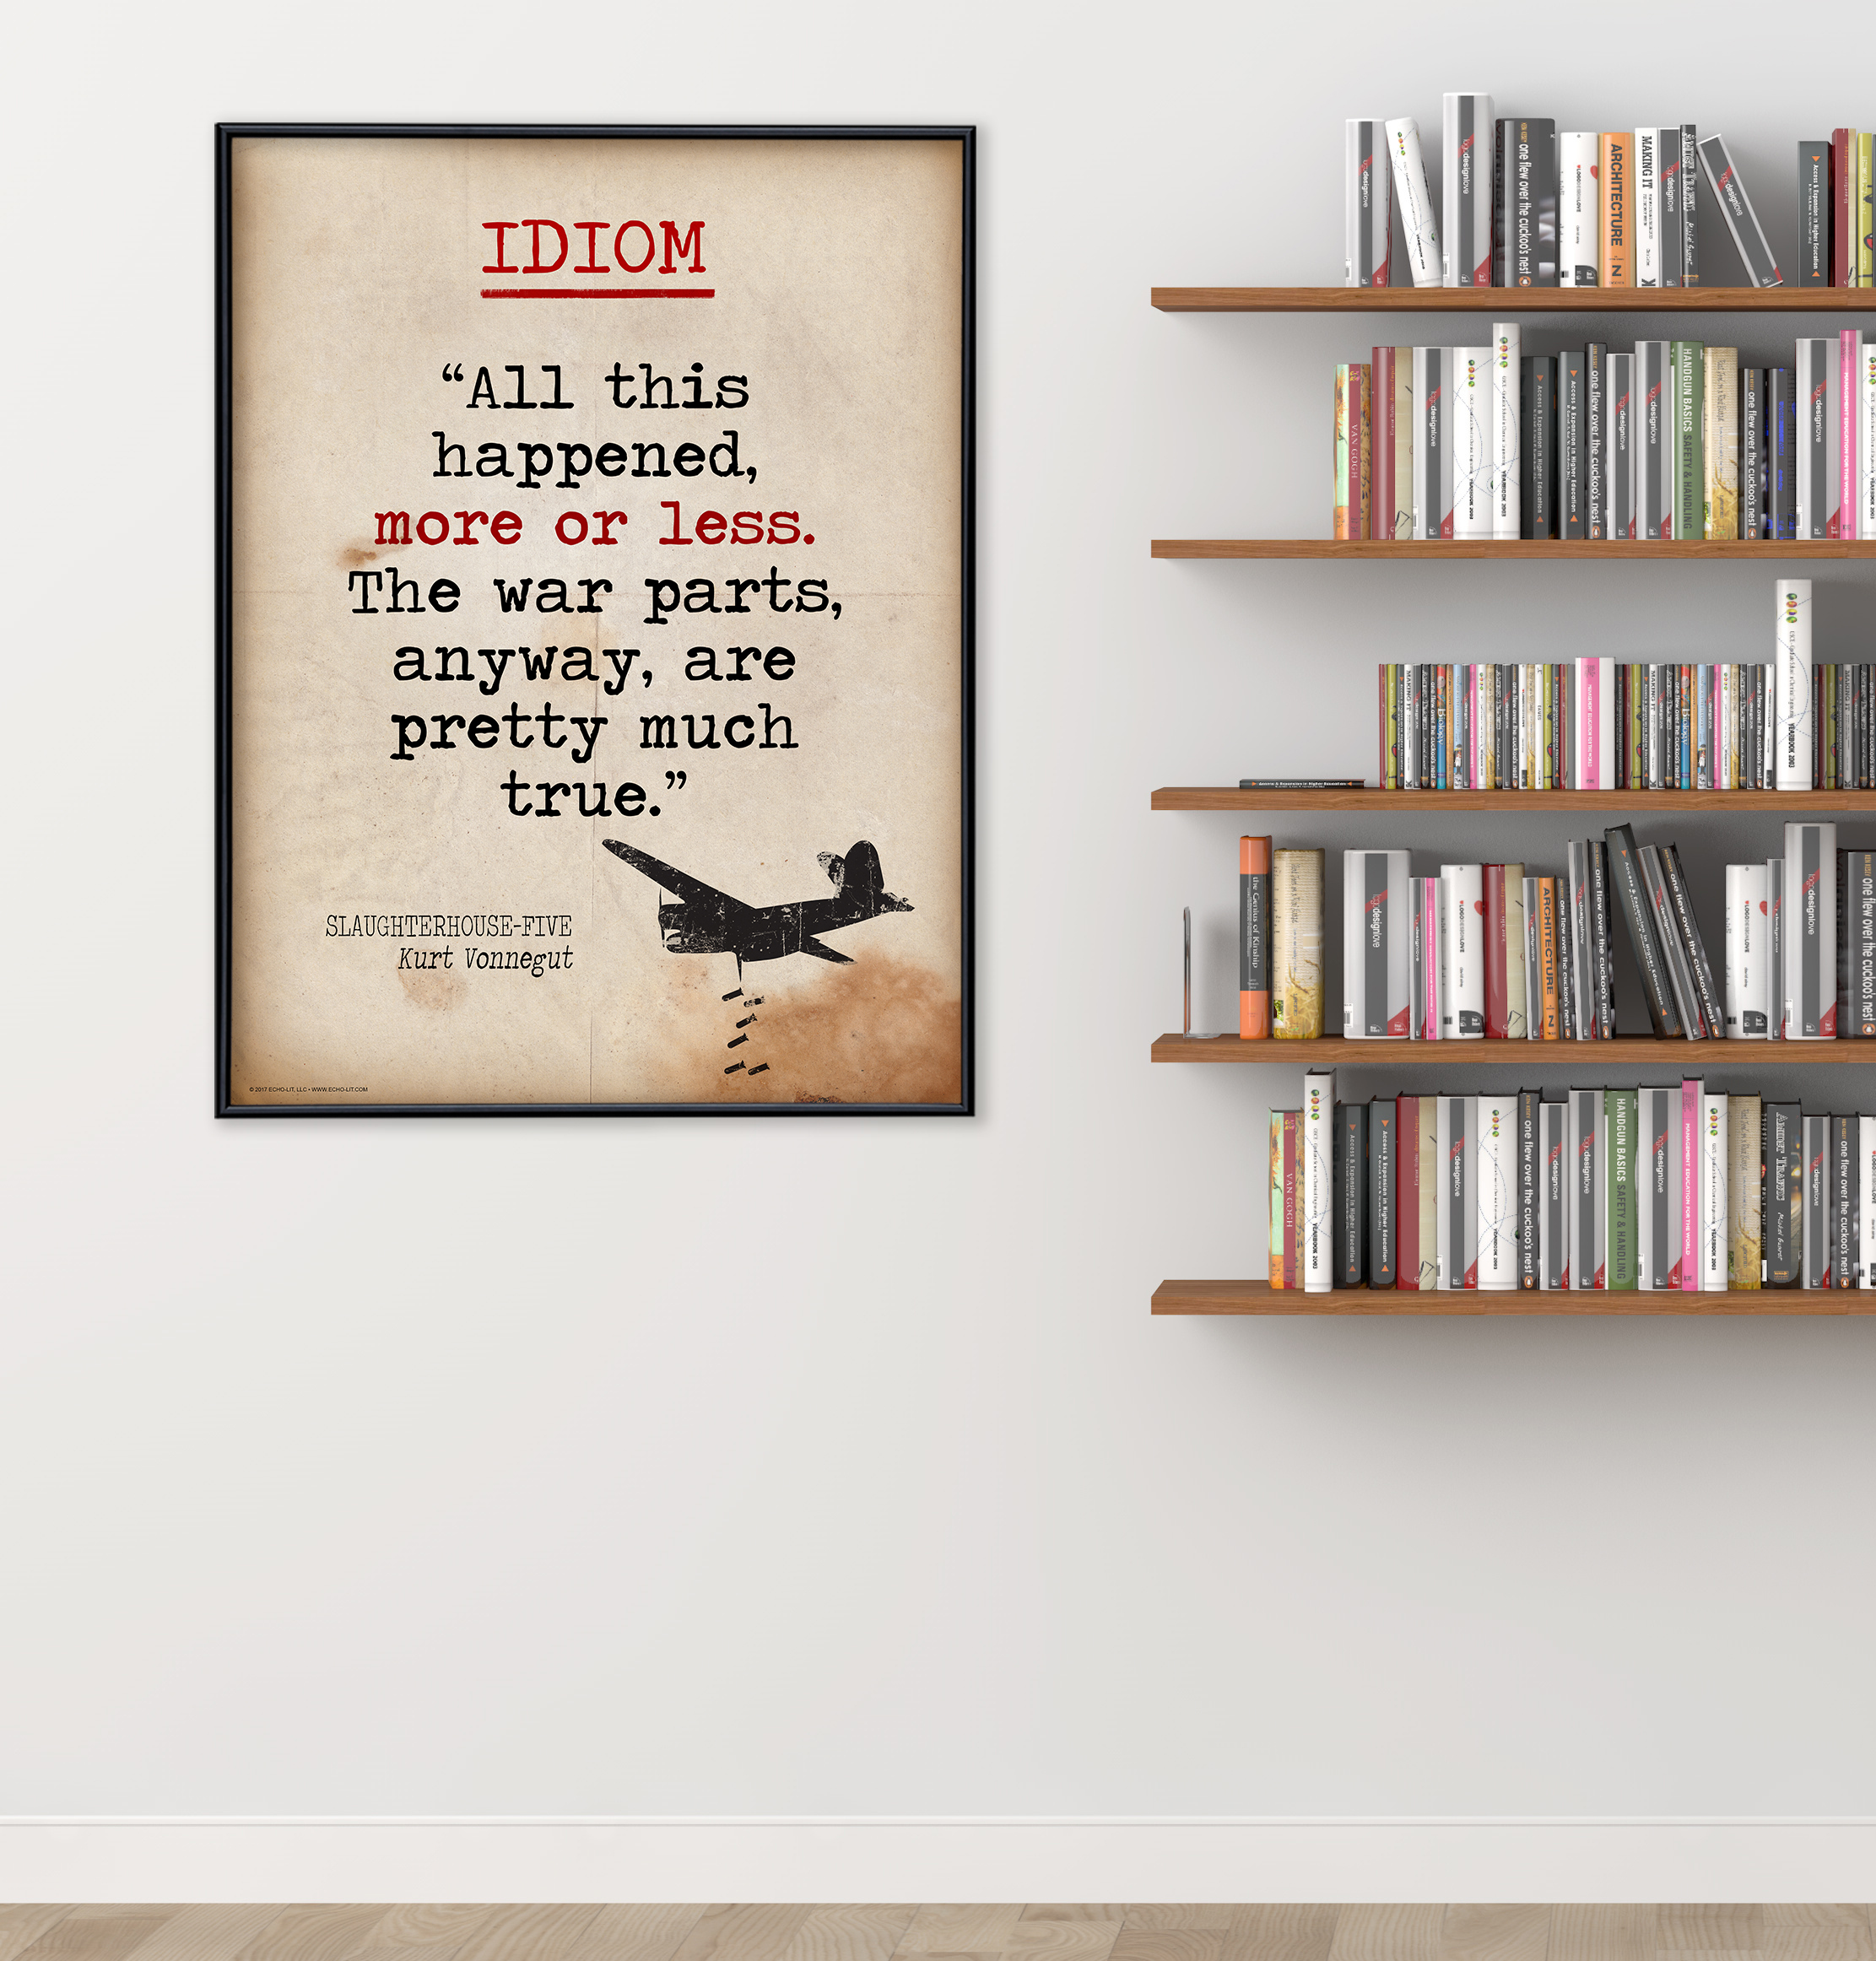 idiom educational poster featuring kurt vonnegut quote vintage style literary term classroom poster